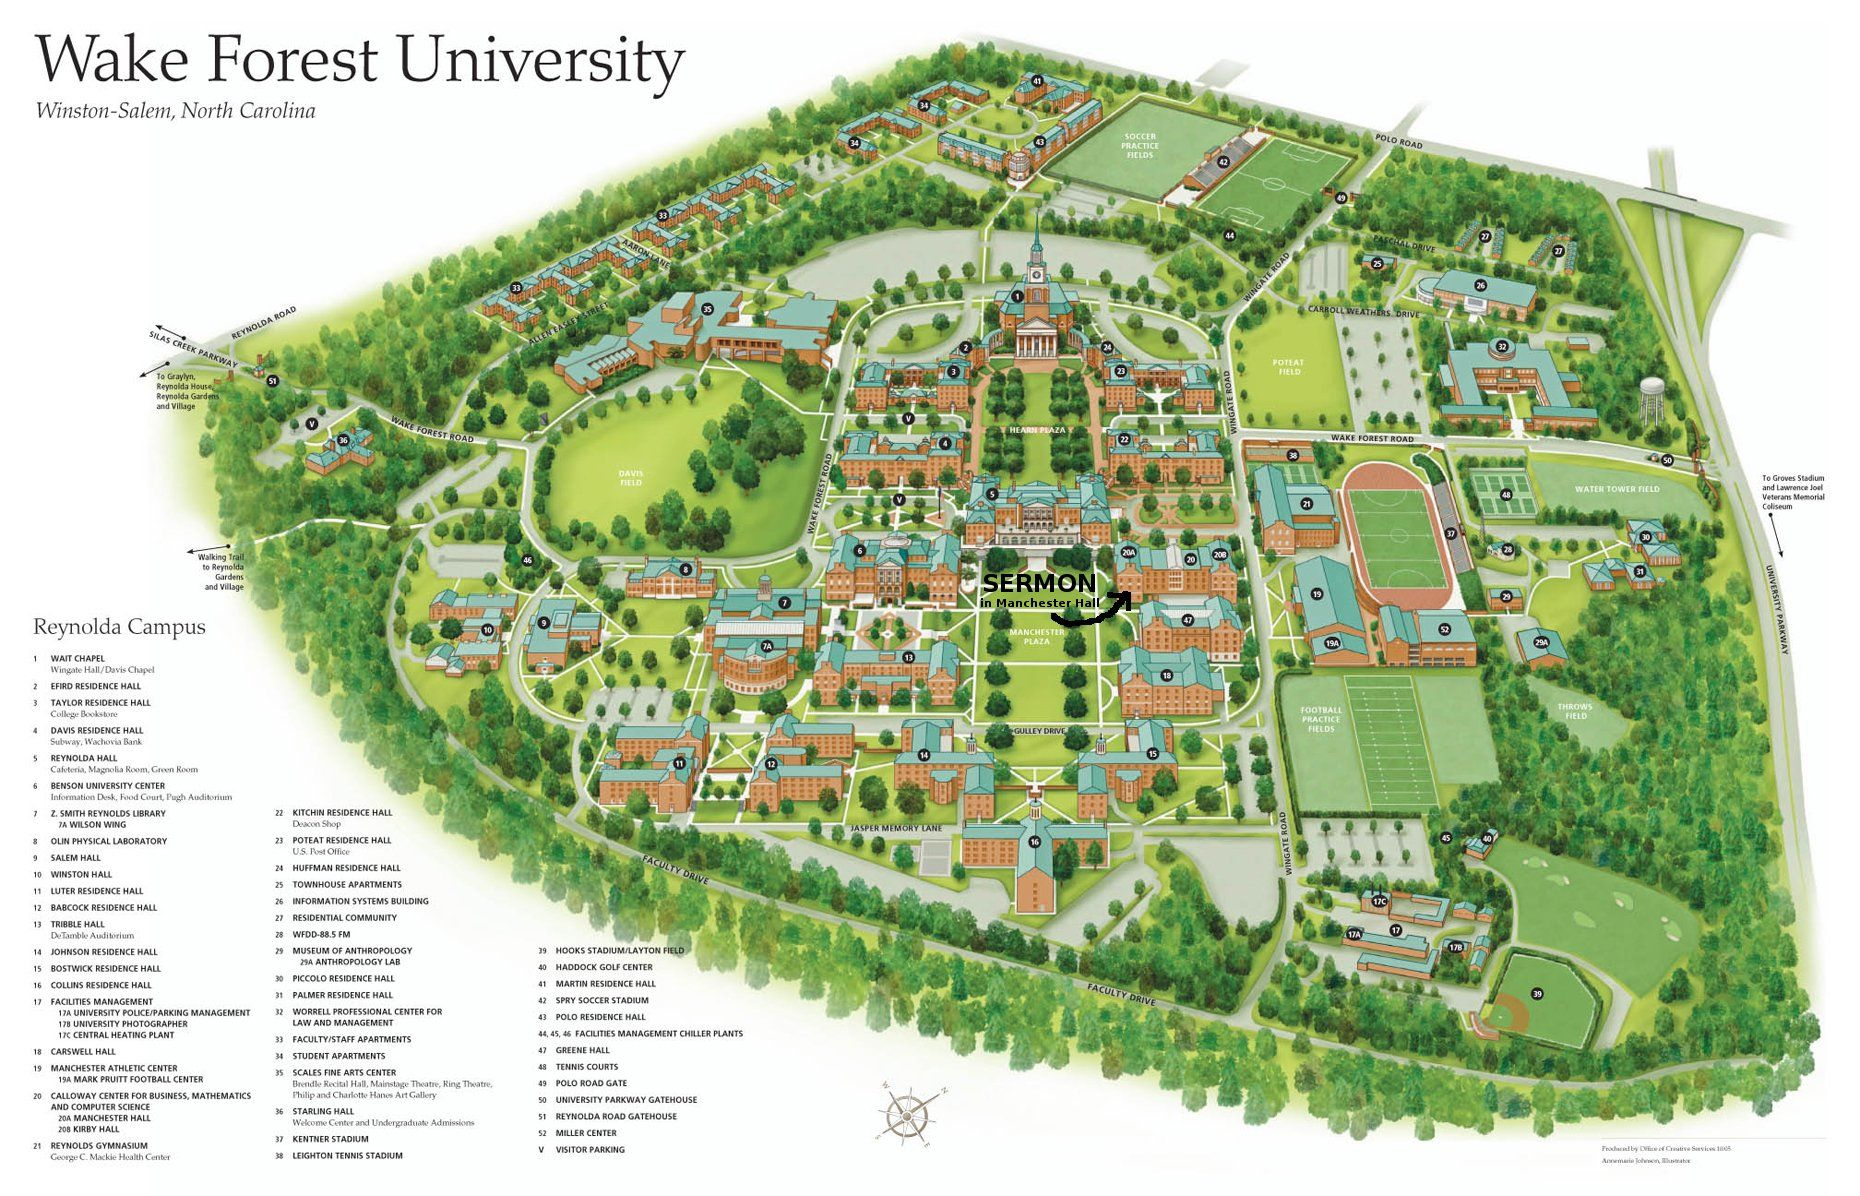 Pin By Irem Sabuncu On University University Campus Map Wake